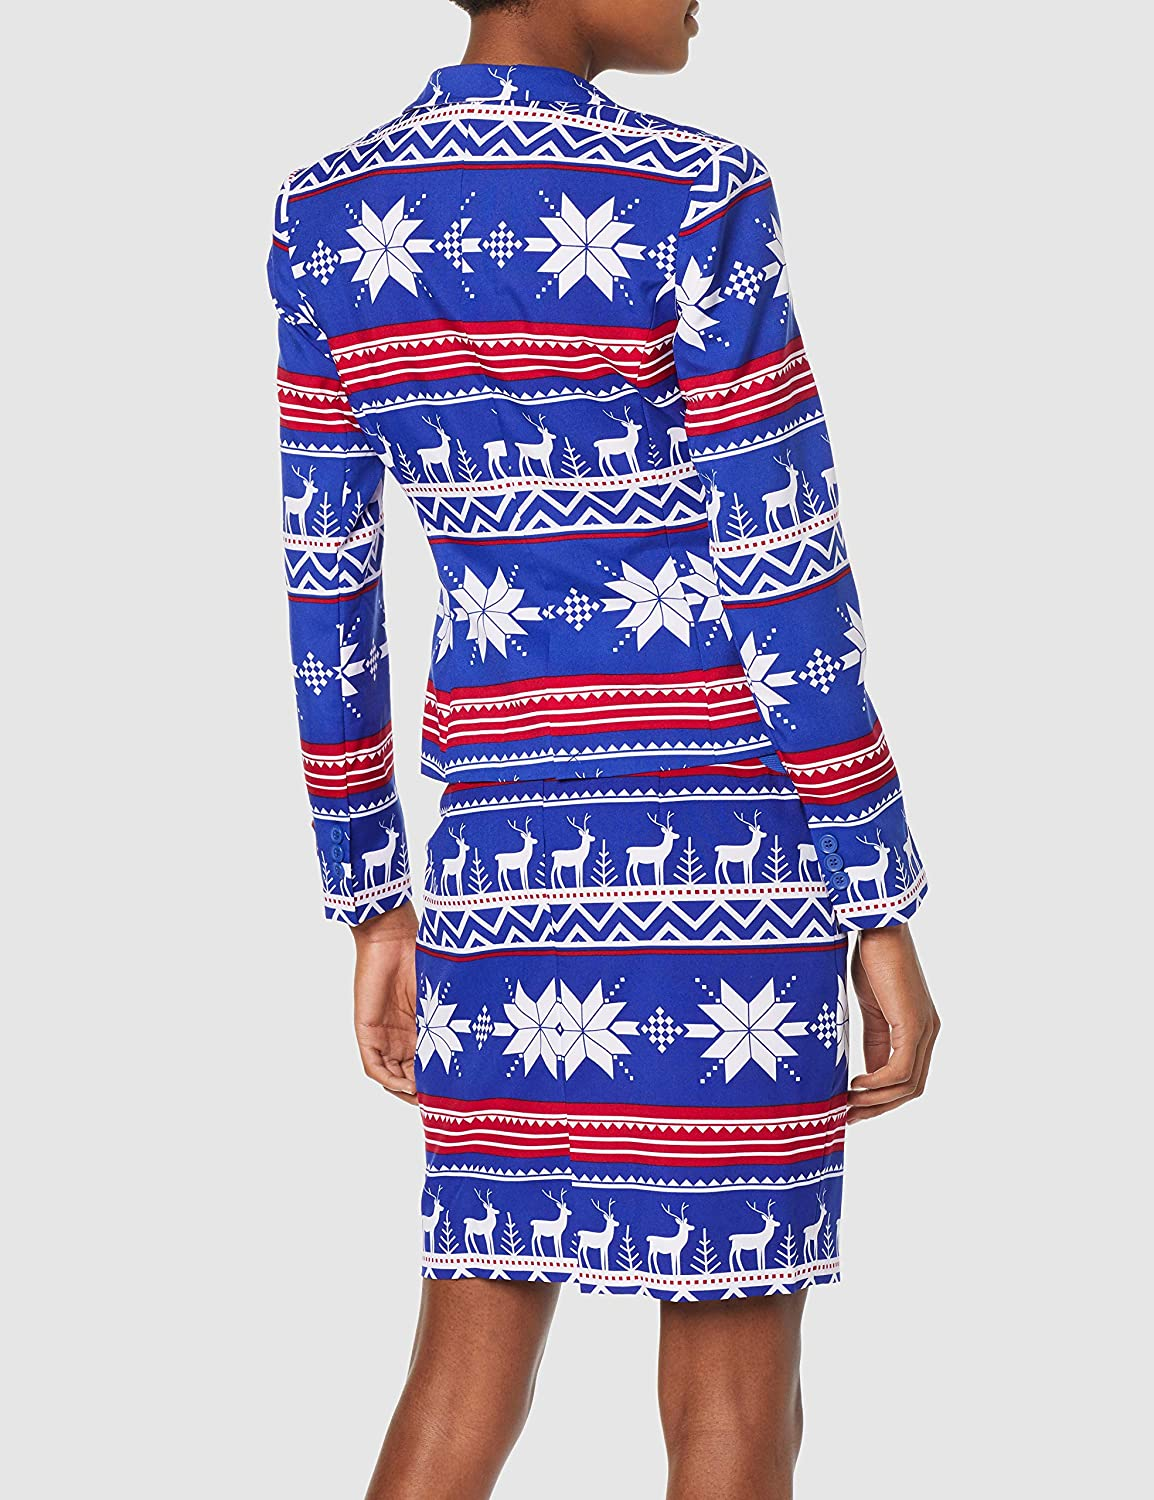 6198d3a556188e Opposuits Christmas Suits for Women in Different Prints - Ugly Xmas Sweater  Costumes Include Blazer and Skirt: Amazon.co.uk: Toys & Games